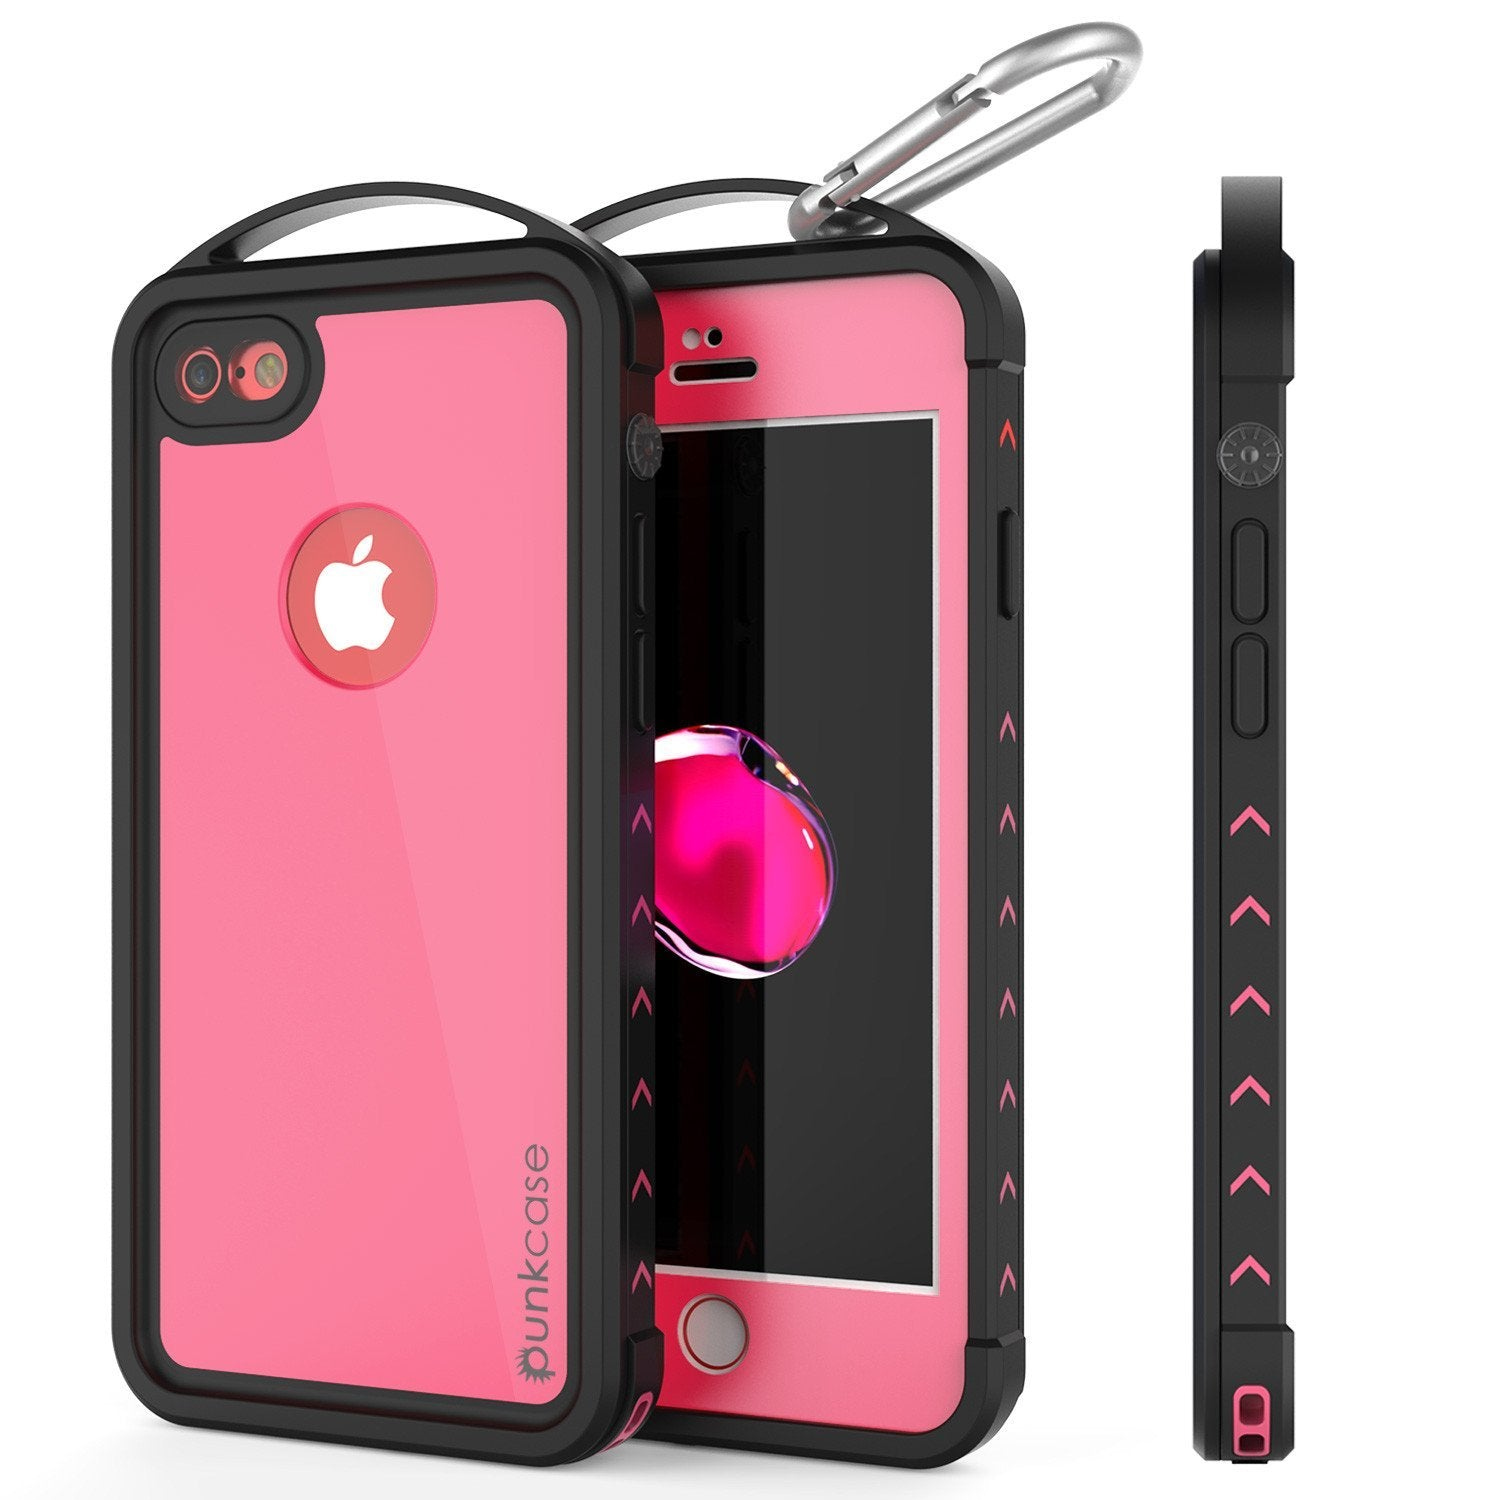 iPhone 8 Waterproof Case, Punkcase ALPINE Series, Pink | Heavy Duty Armor Cover - PunkCase NZ